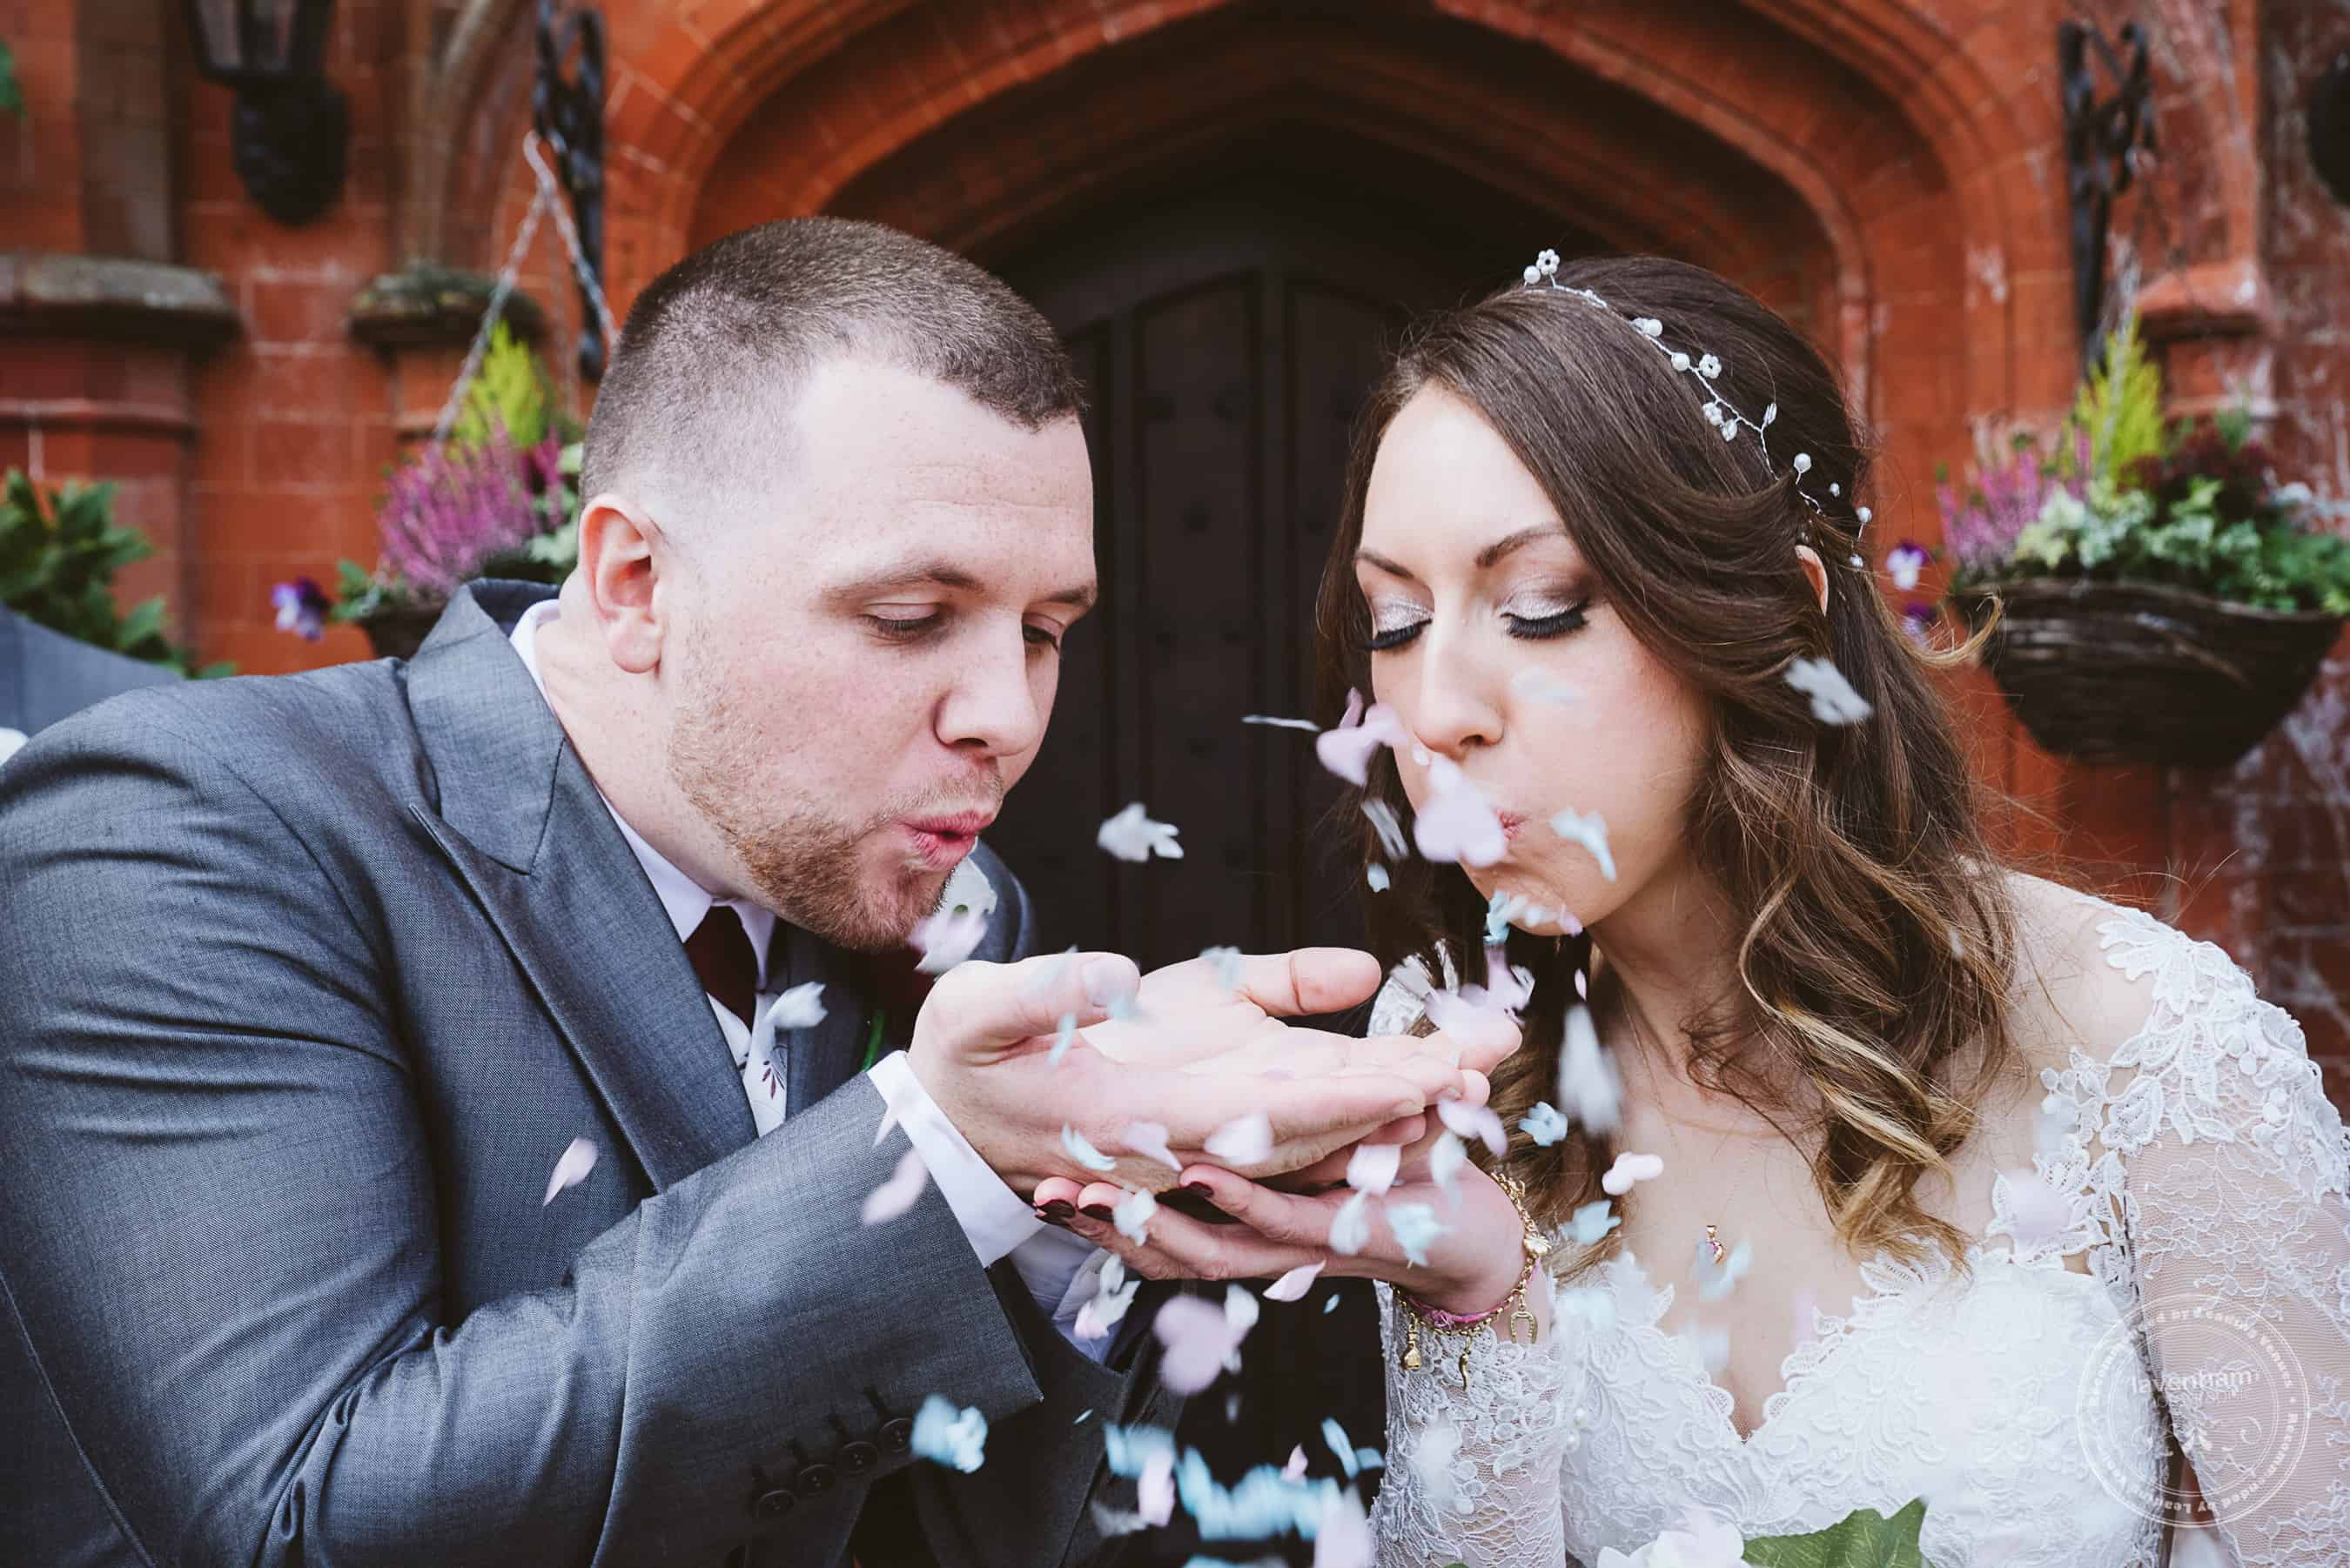 041118 Woodhall Manor Wedding Photography by Lavenham Photographic 071